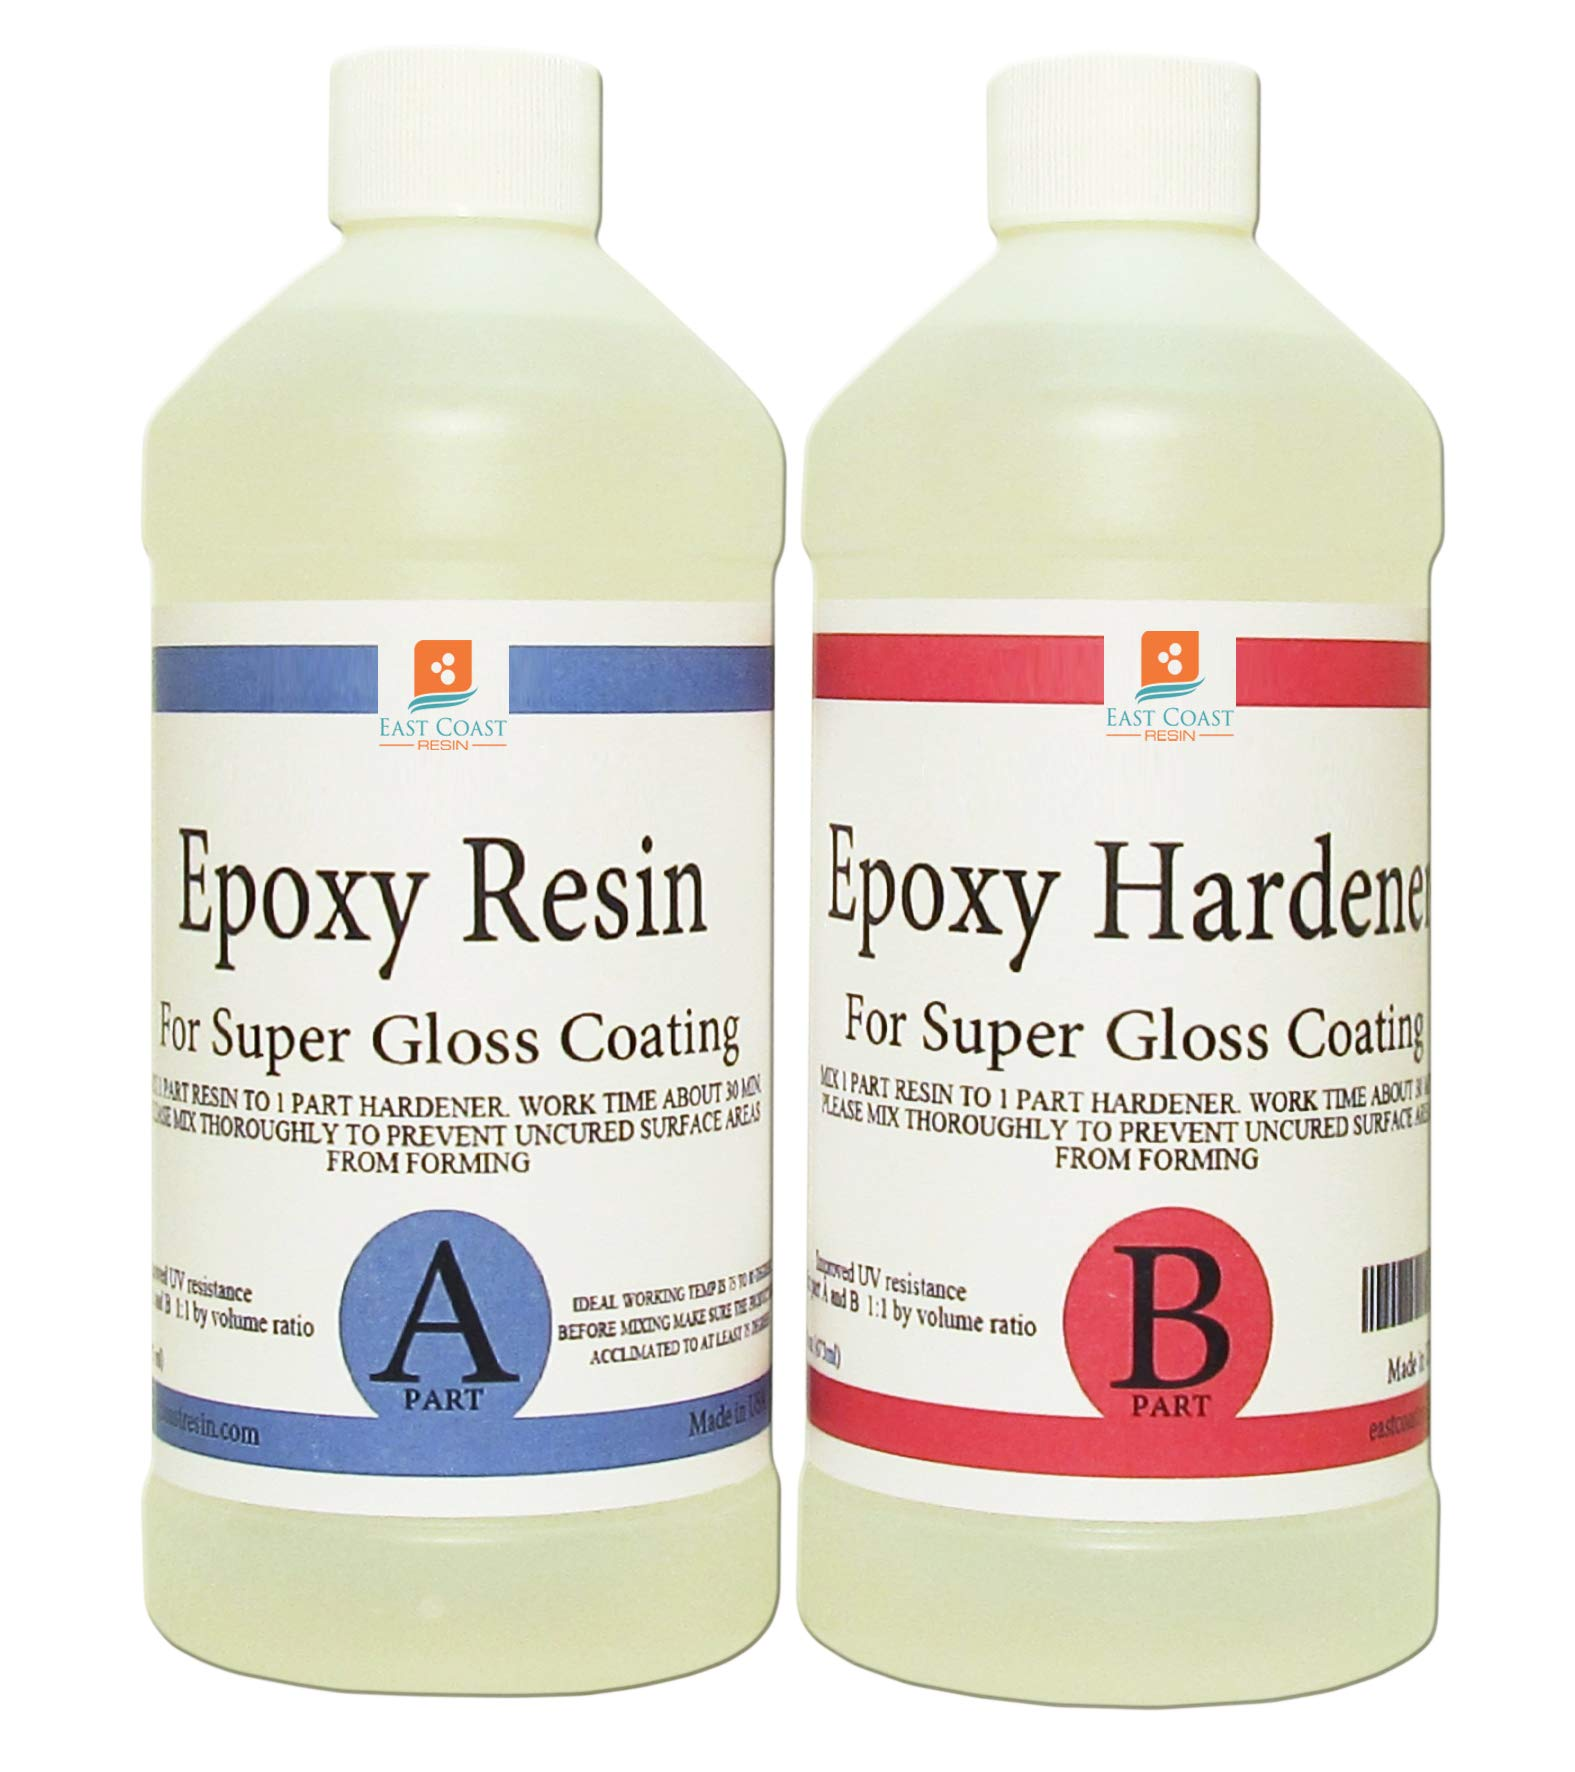 EPOXY Resin Crystal Clear 8 oz Kit. for Super Gloss Coating and TABLETOPS by East Coast Resin